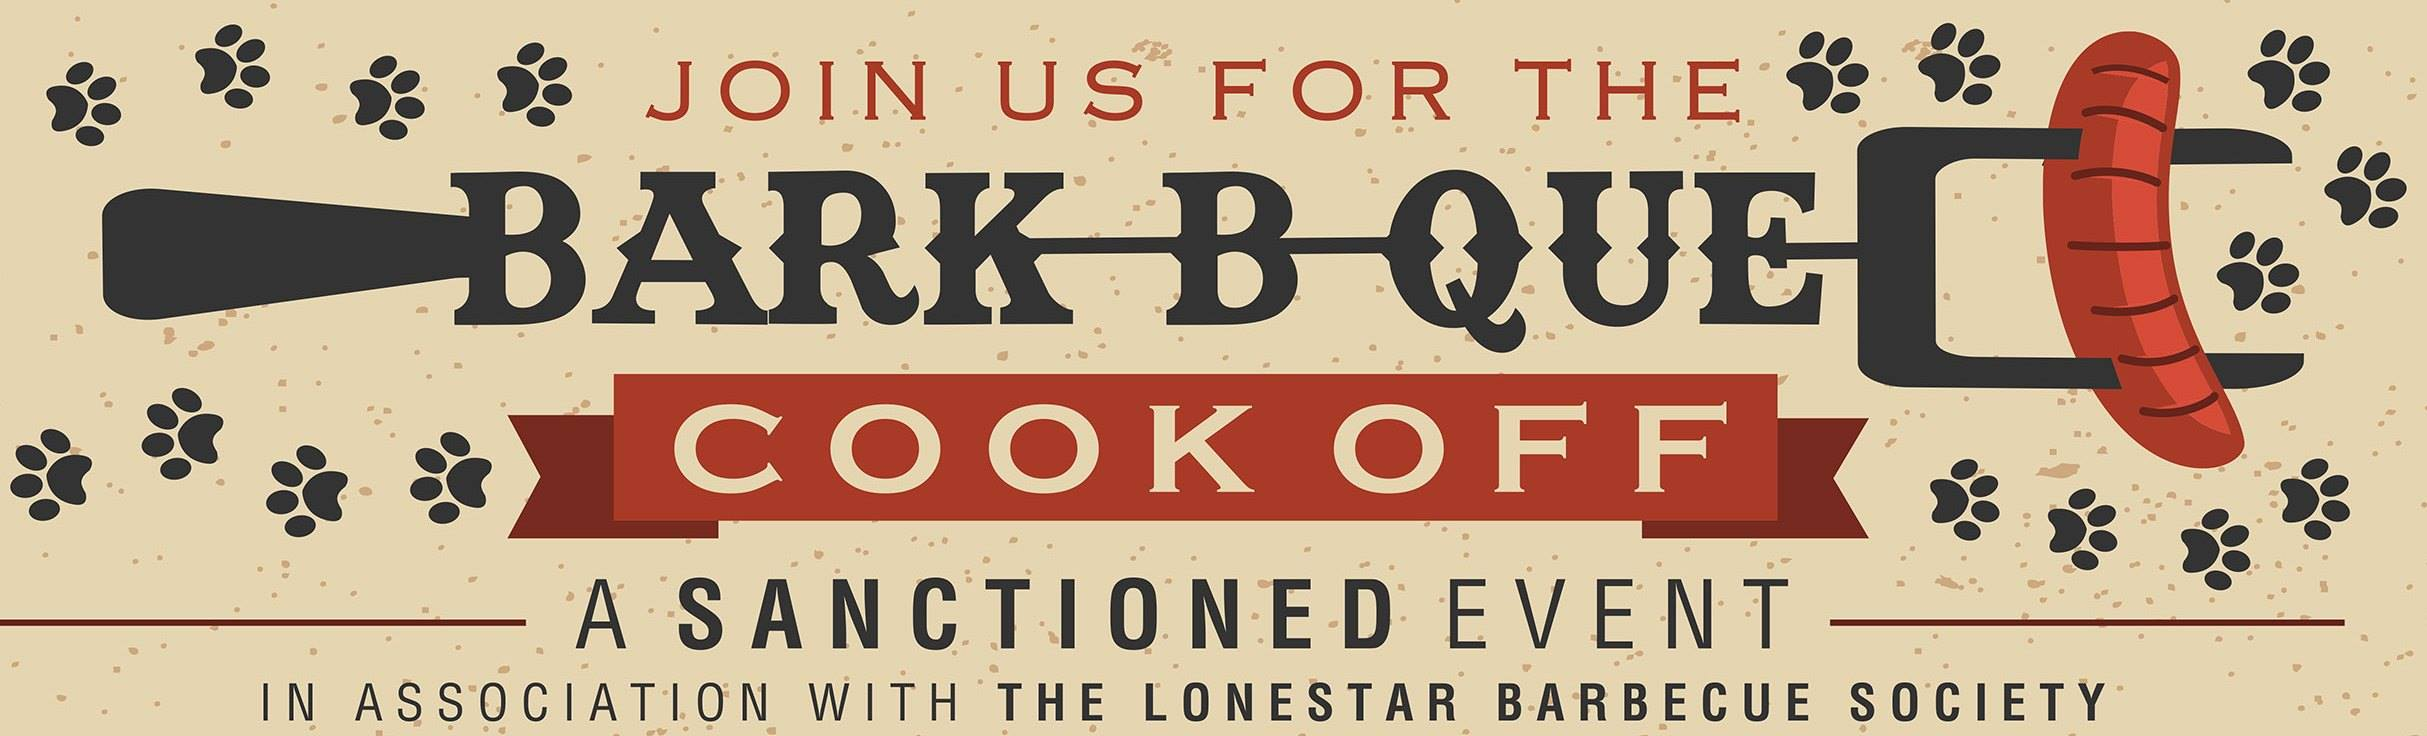 Bark-B-Que Cook Off Vendor Booth fees to help the animals at Taylor Texas shelter